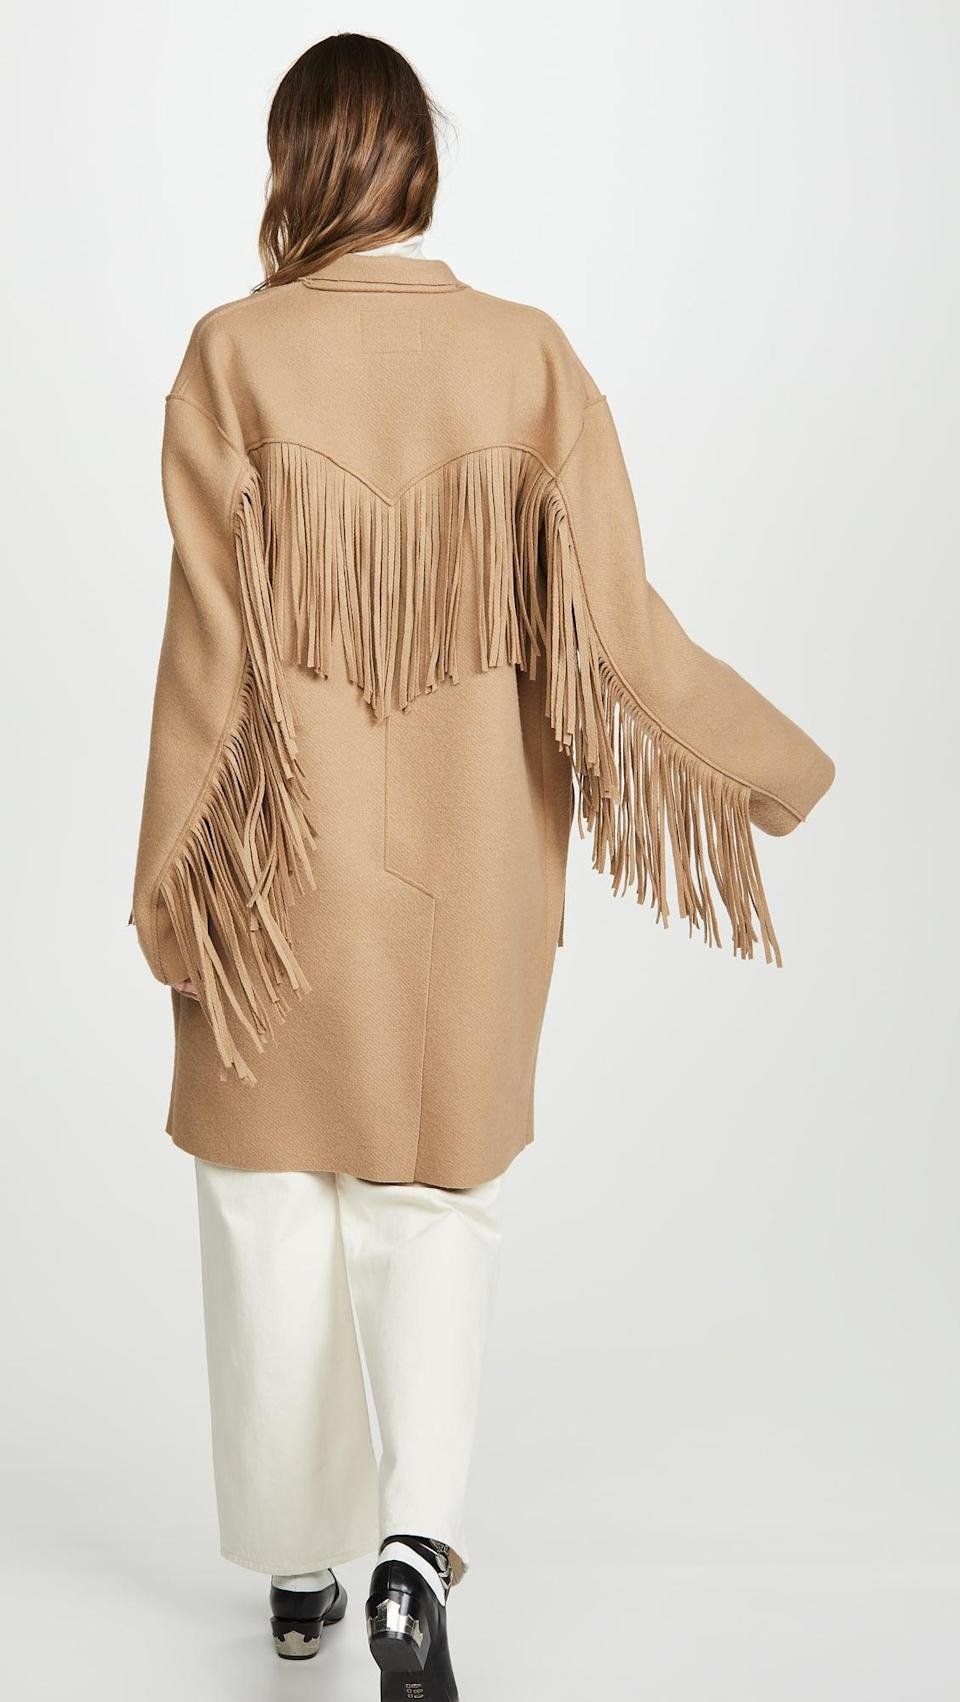 <p>This <span>R13 Fringe Raw Cut Coat</span> ($1,595) is the coat we're dreaming of right now. It's so cool, and we like it paired with light, tonal colors.</p>